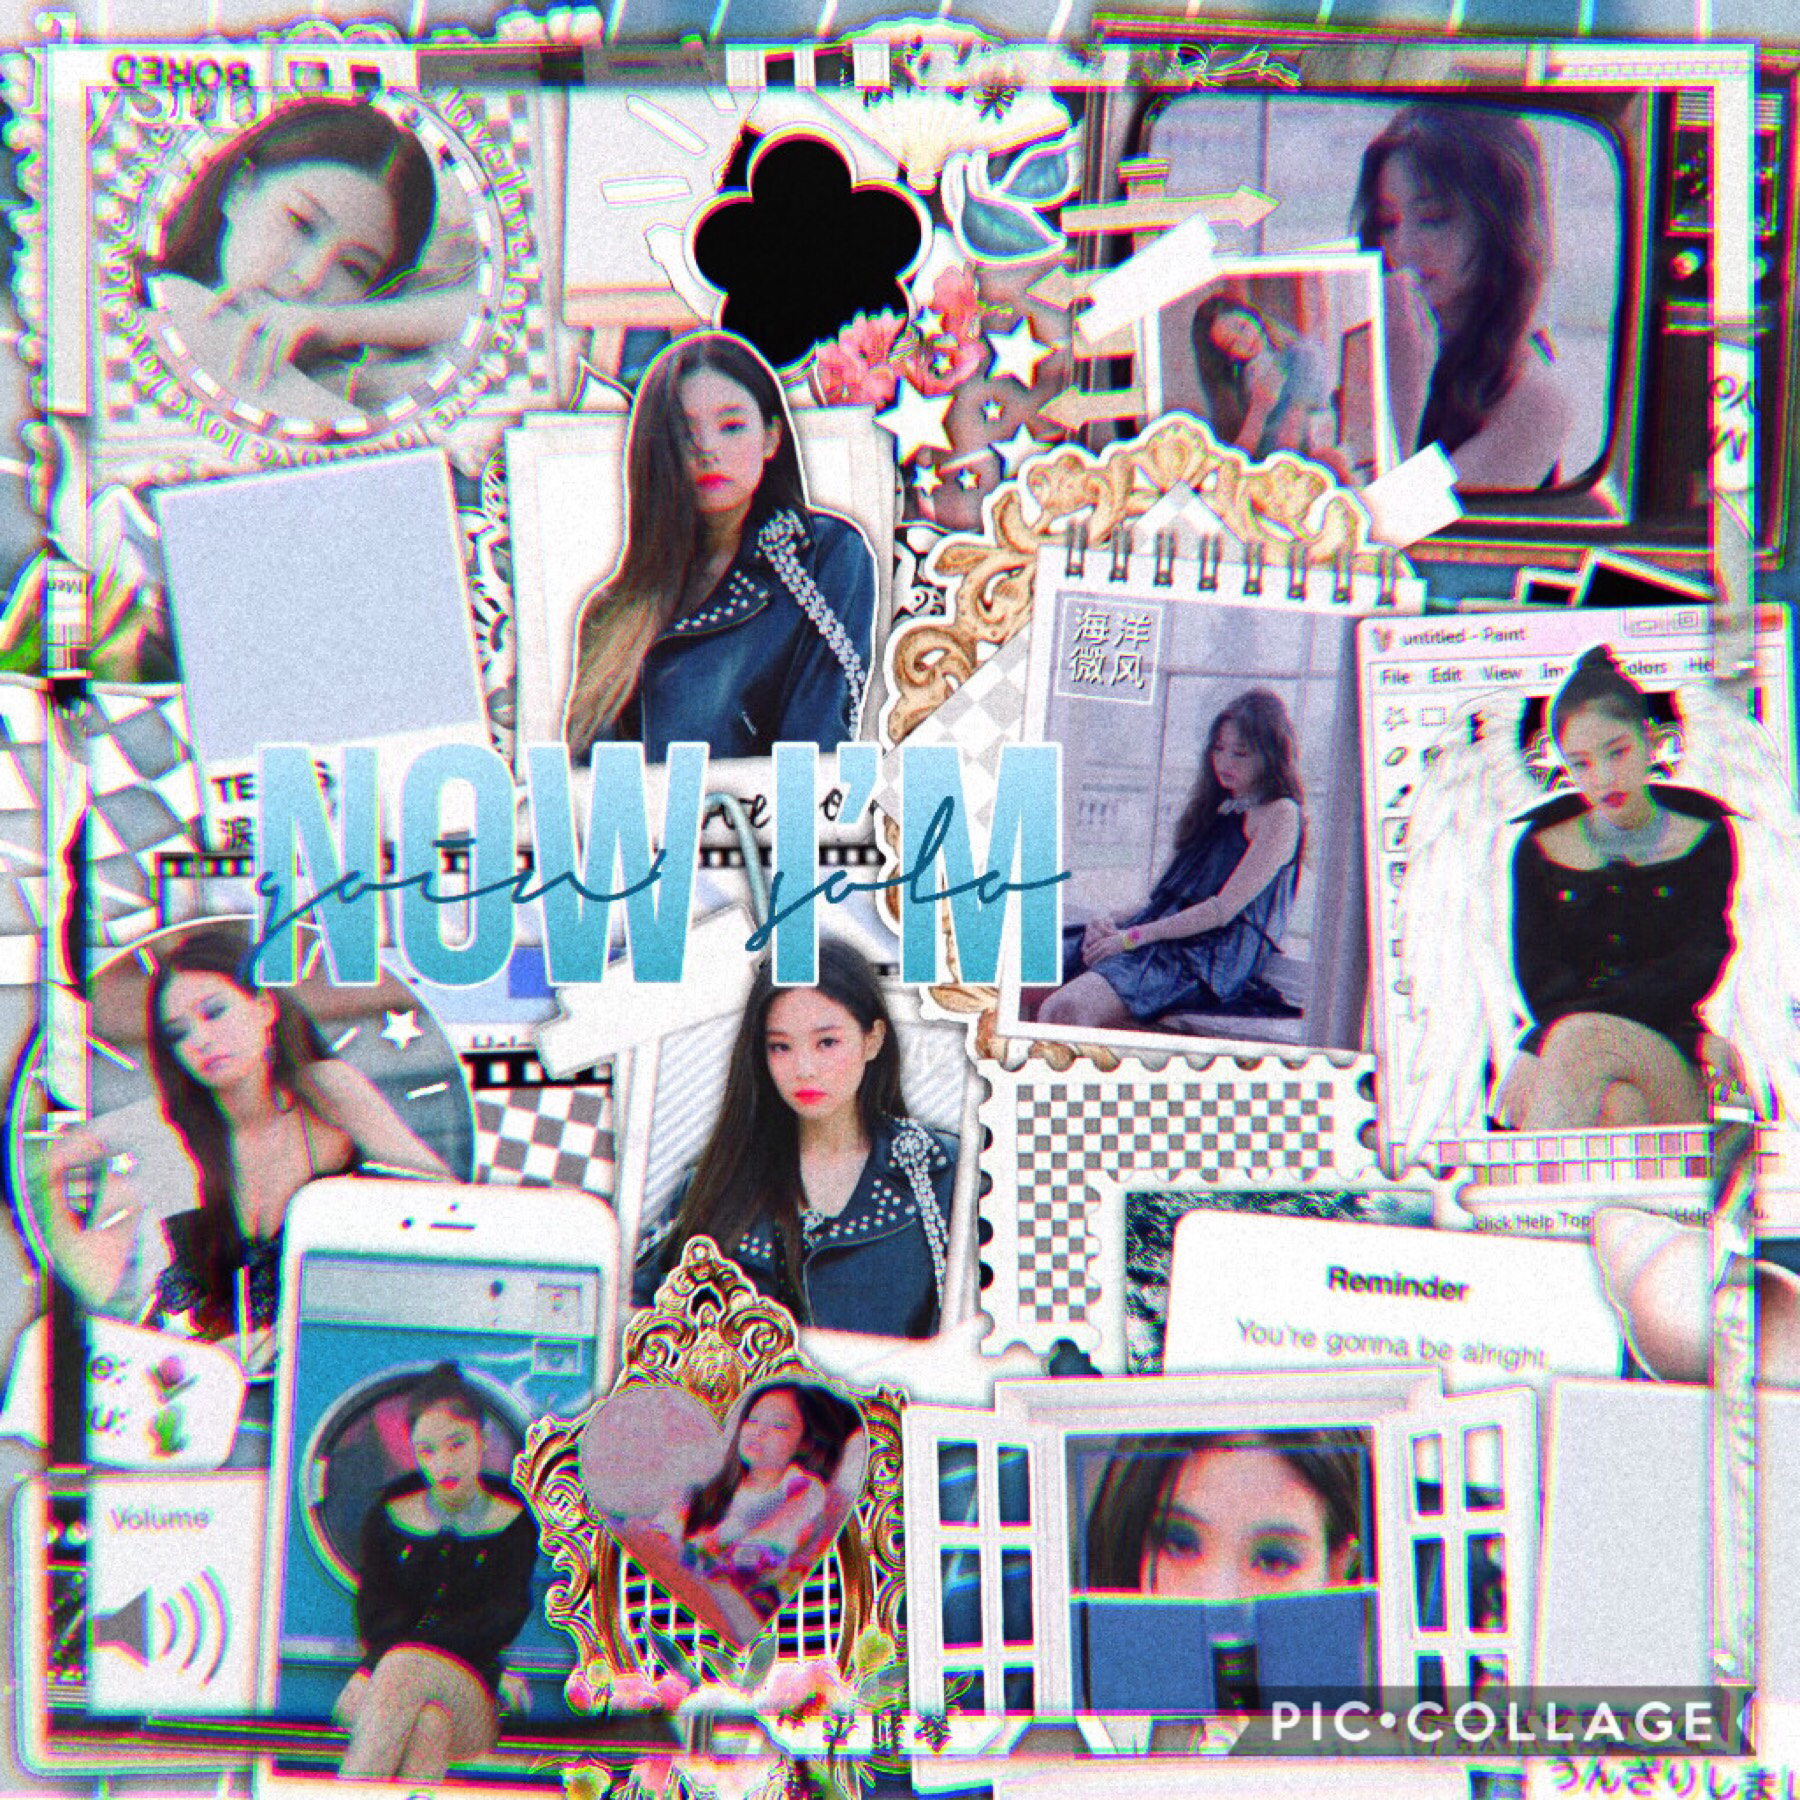 🌊tap🌊 🌊i apologise for not posting on this account for a long time, I didn't rlly have inspo for these kind of edits so um yea... btw, if ur a fellow kpopper, go follow @urlocalkpoptrash for kpop edits and memes, the account is owned by me and my 2 friend